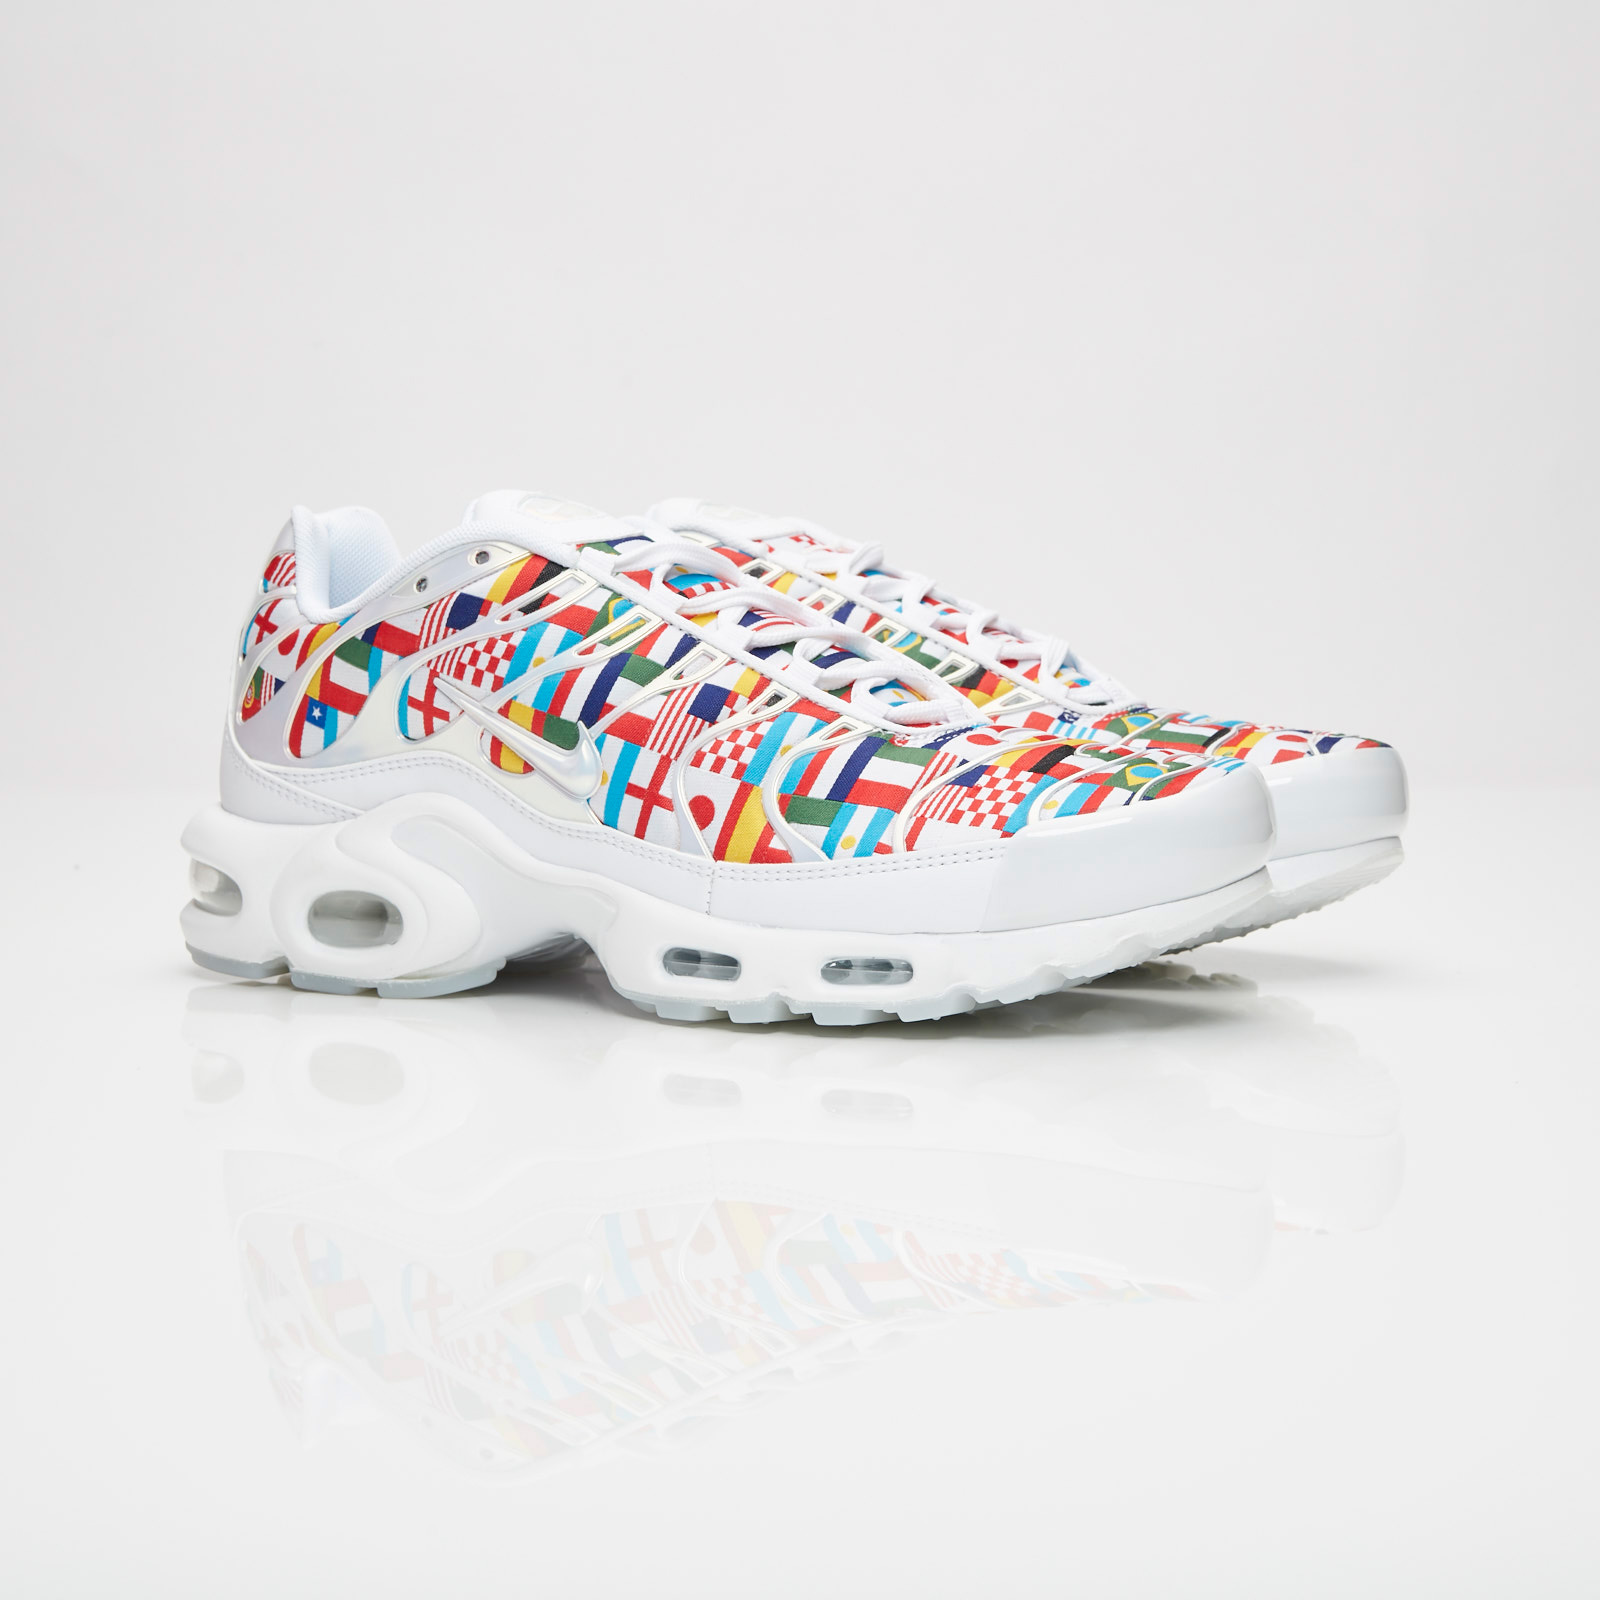 super popular 5c25e f11ee Nike Sportswear Air Max Plus NIC QS